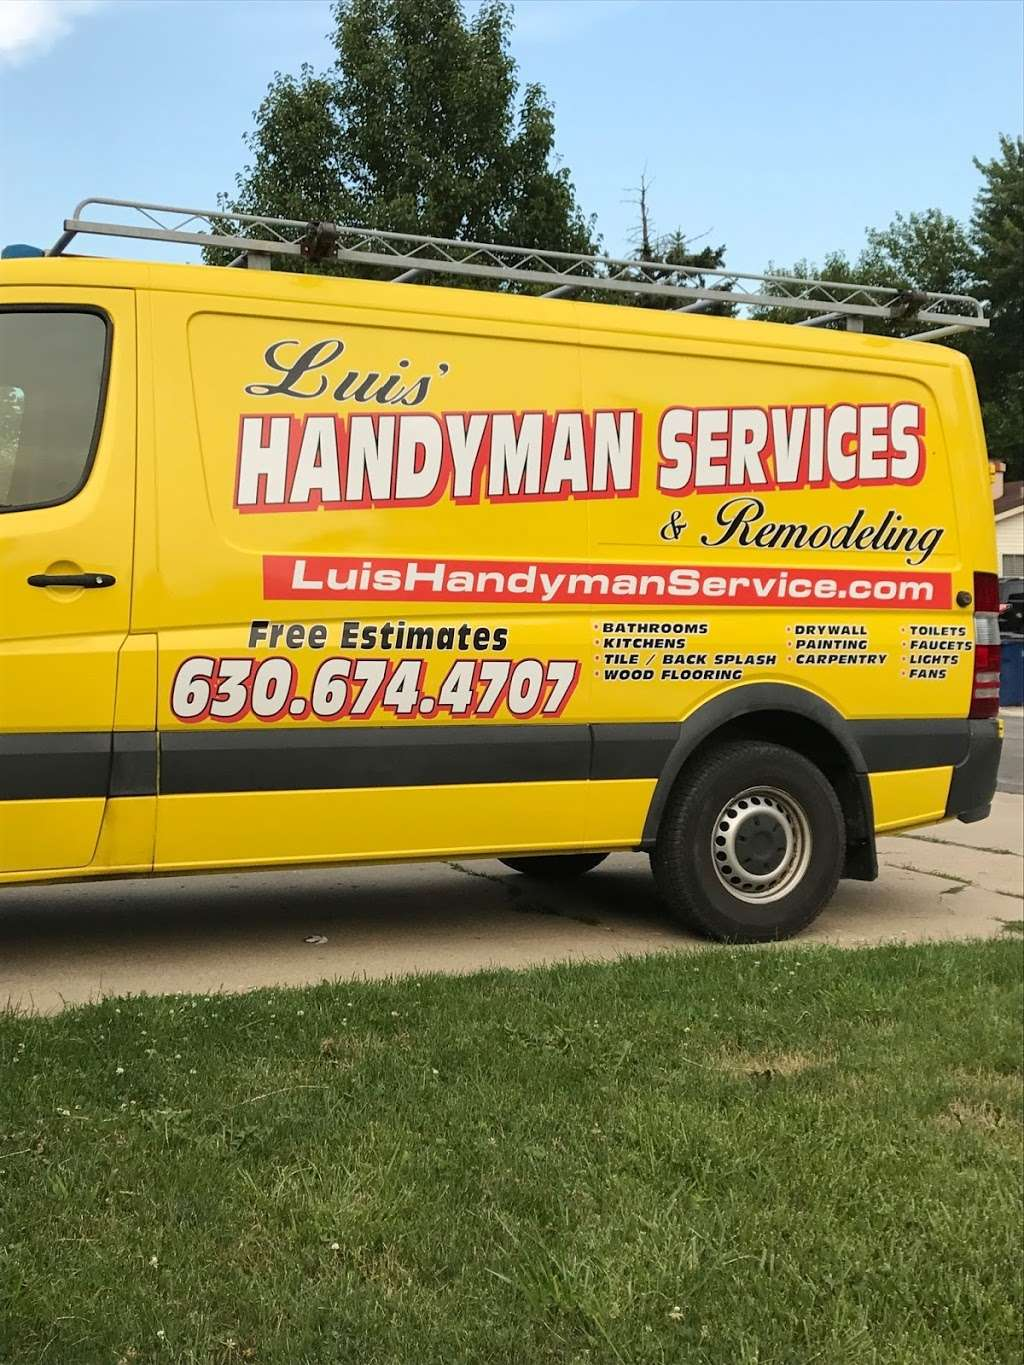 Luis Handyman Service - home goods store  | Photo 1 of 10 | Address: 136 E Altgeld Ave, Glendale Heights, IL 60139, USA | Phone: (630) 674-4707